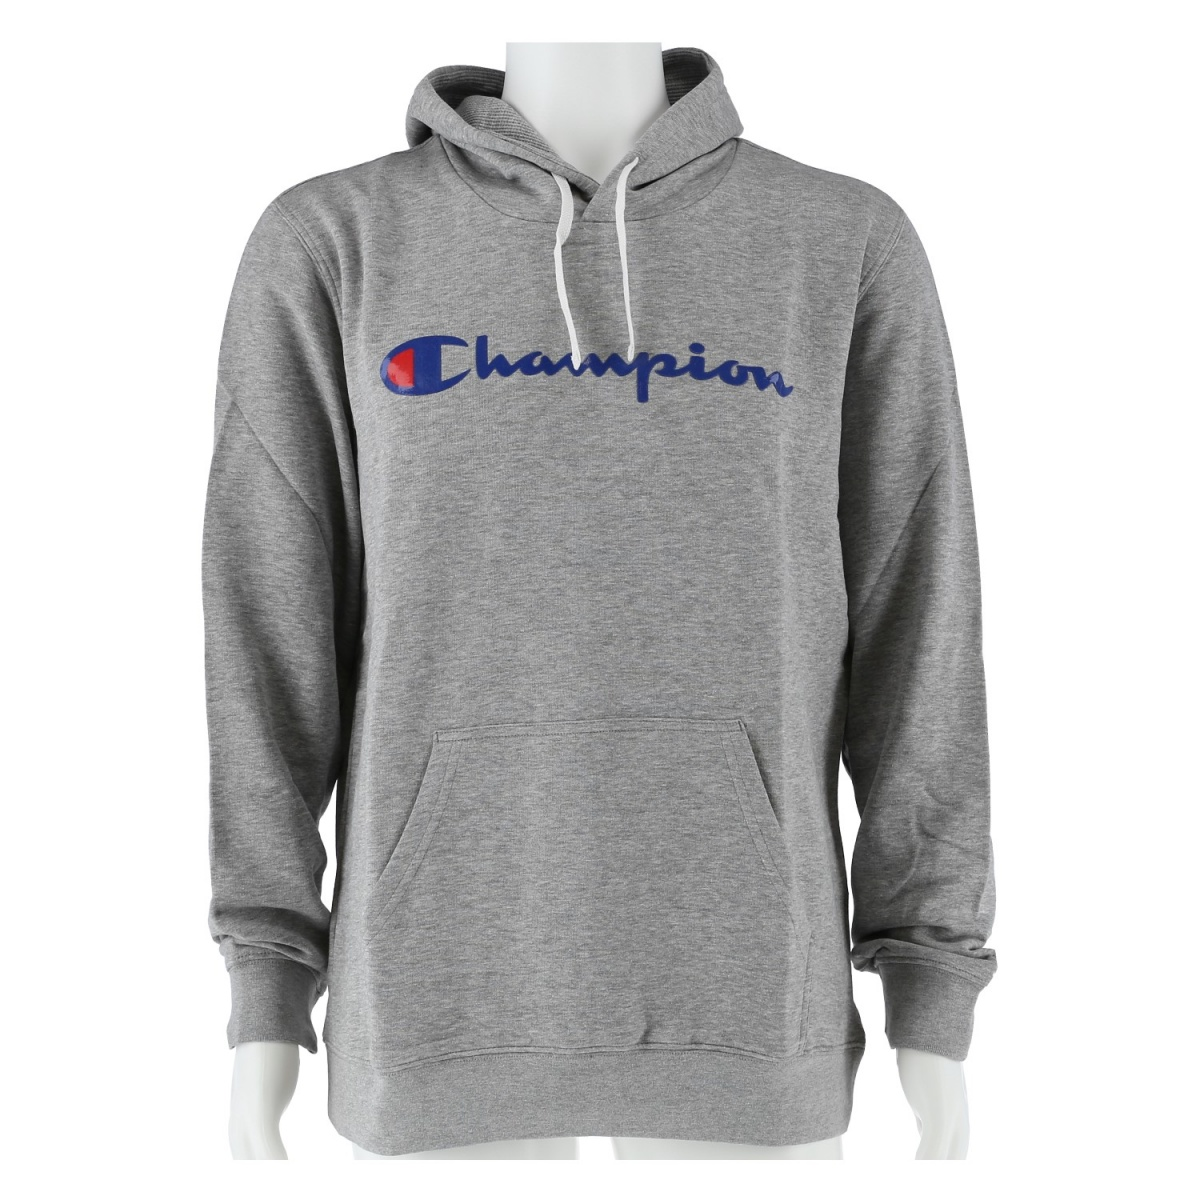 buy popular 9c6b1 18963 Champion Hoodie Big Print 2018 grau Herren